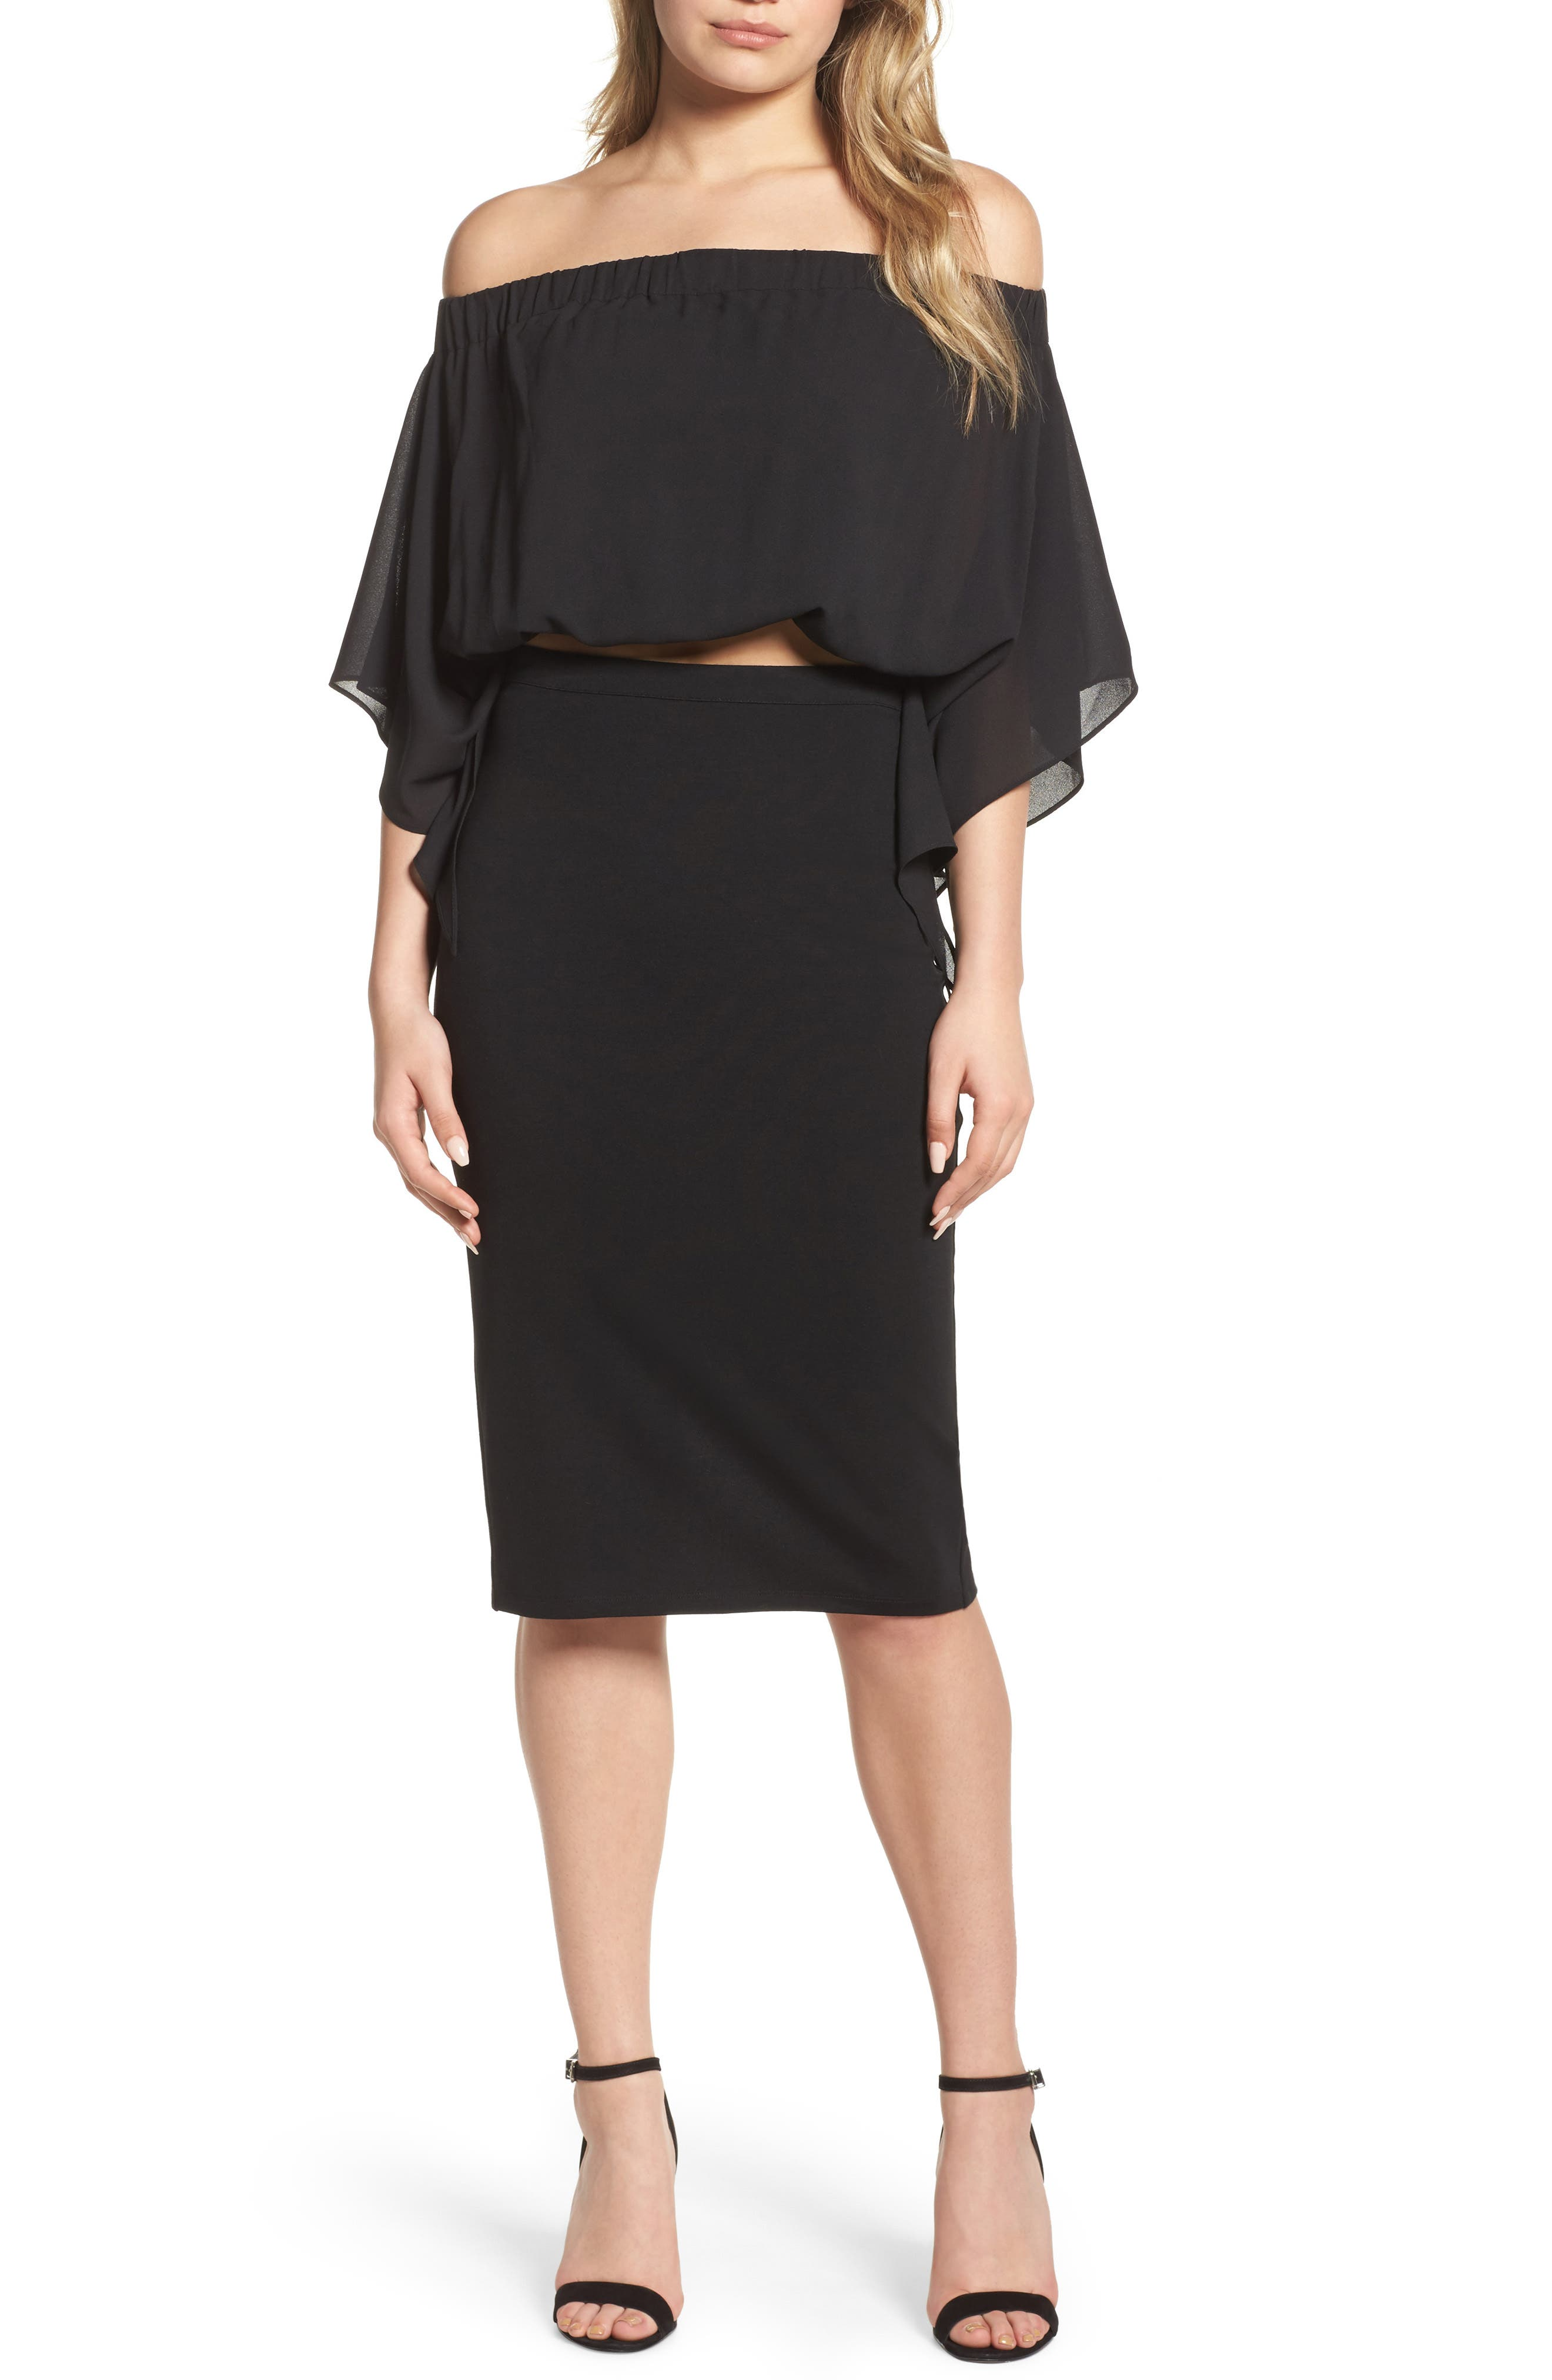 Sweet Smell of Success Two-Piece Dress,                         Main,                         color, Black